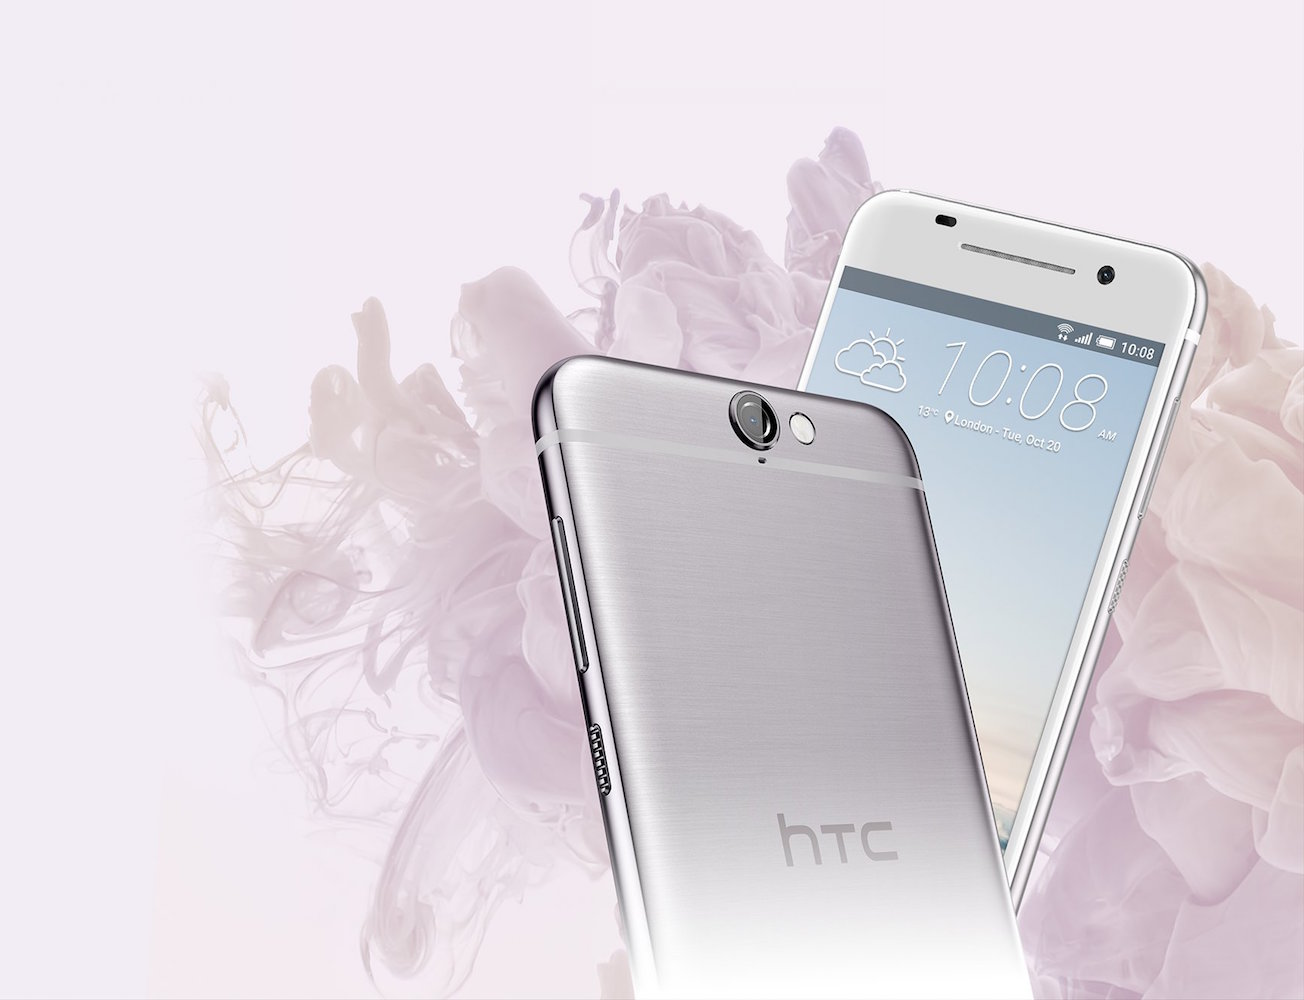 HTC One A9 With Android 6.0 Marshmallow